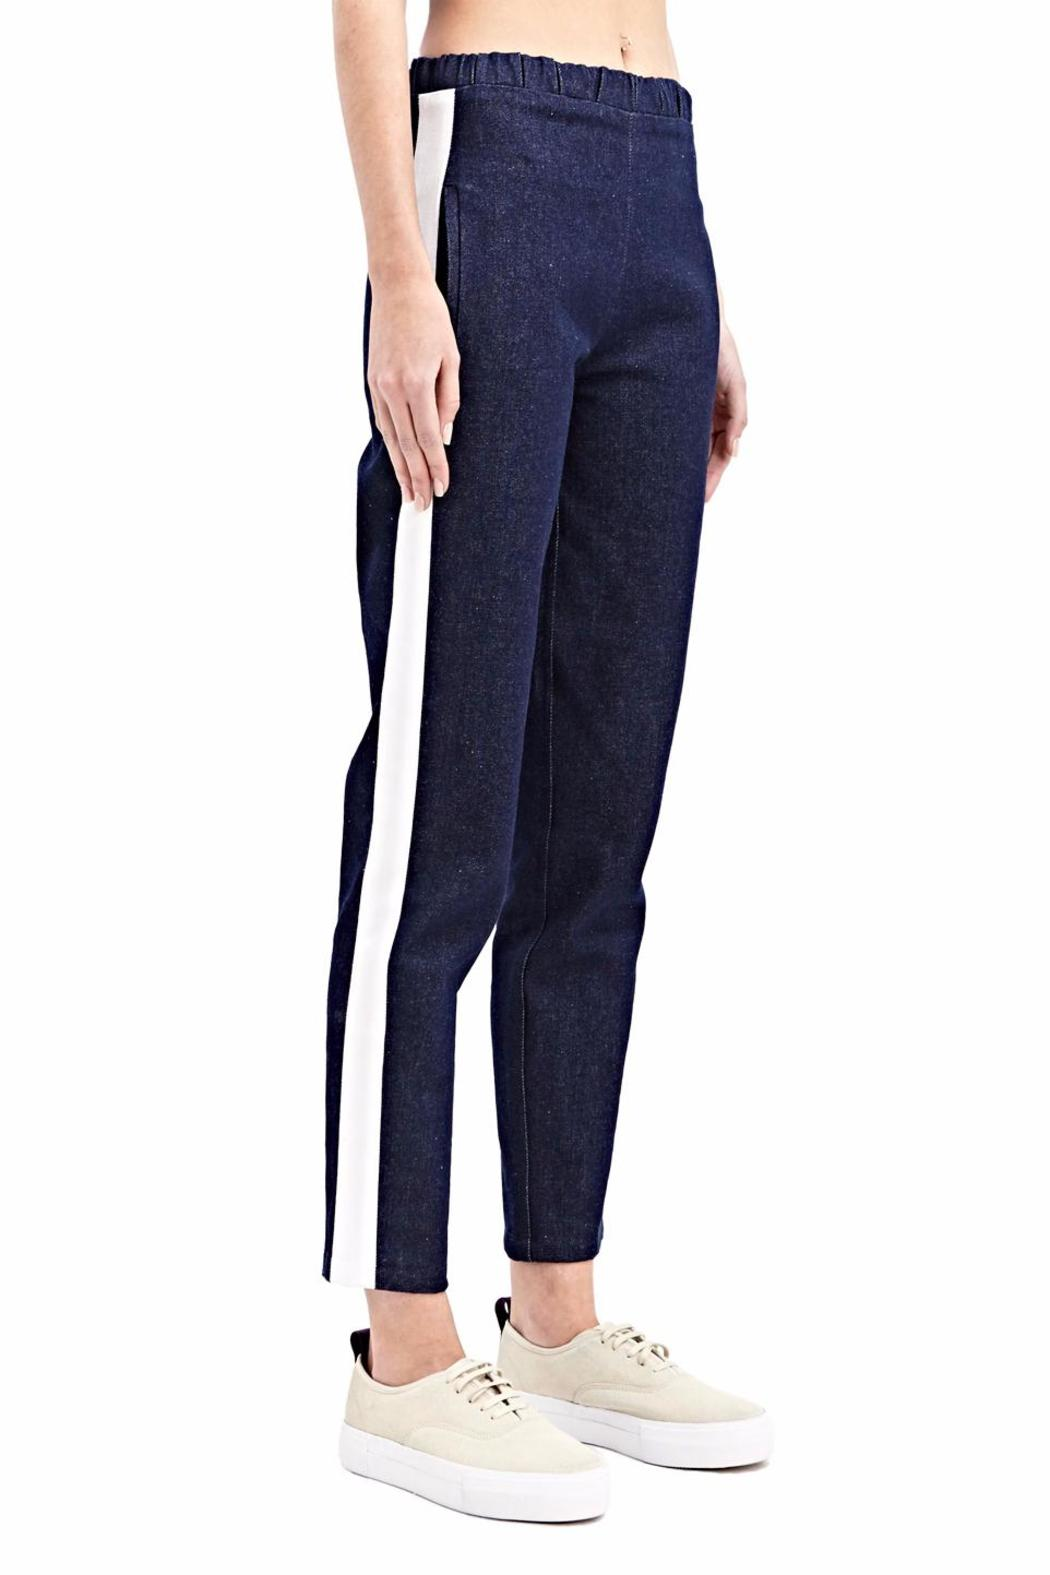 Charlie May Denim Track Pants - Front Cropped Image